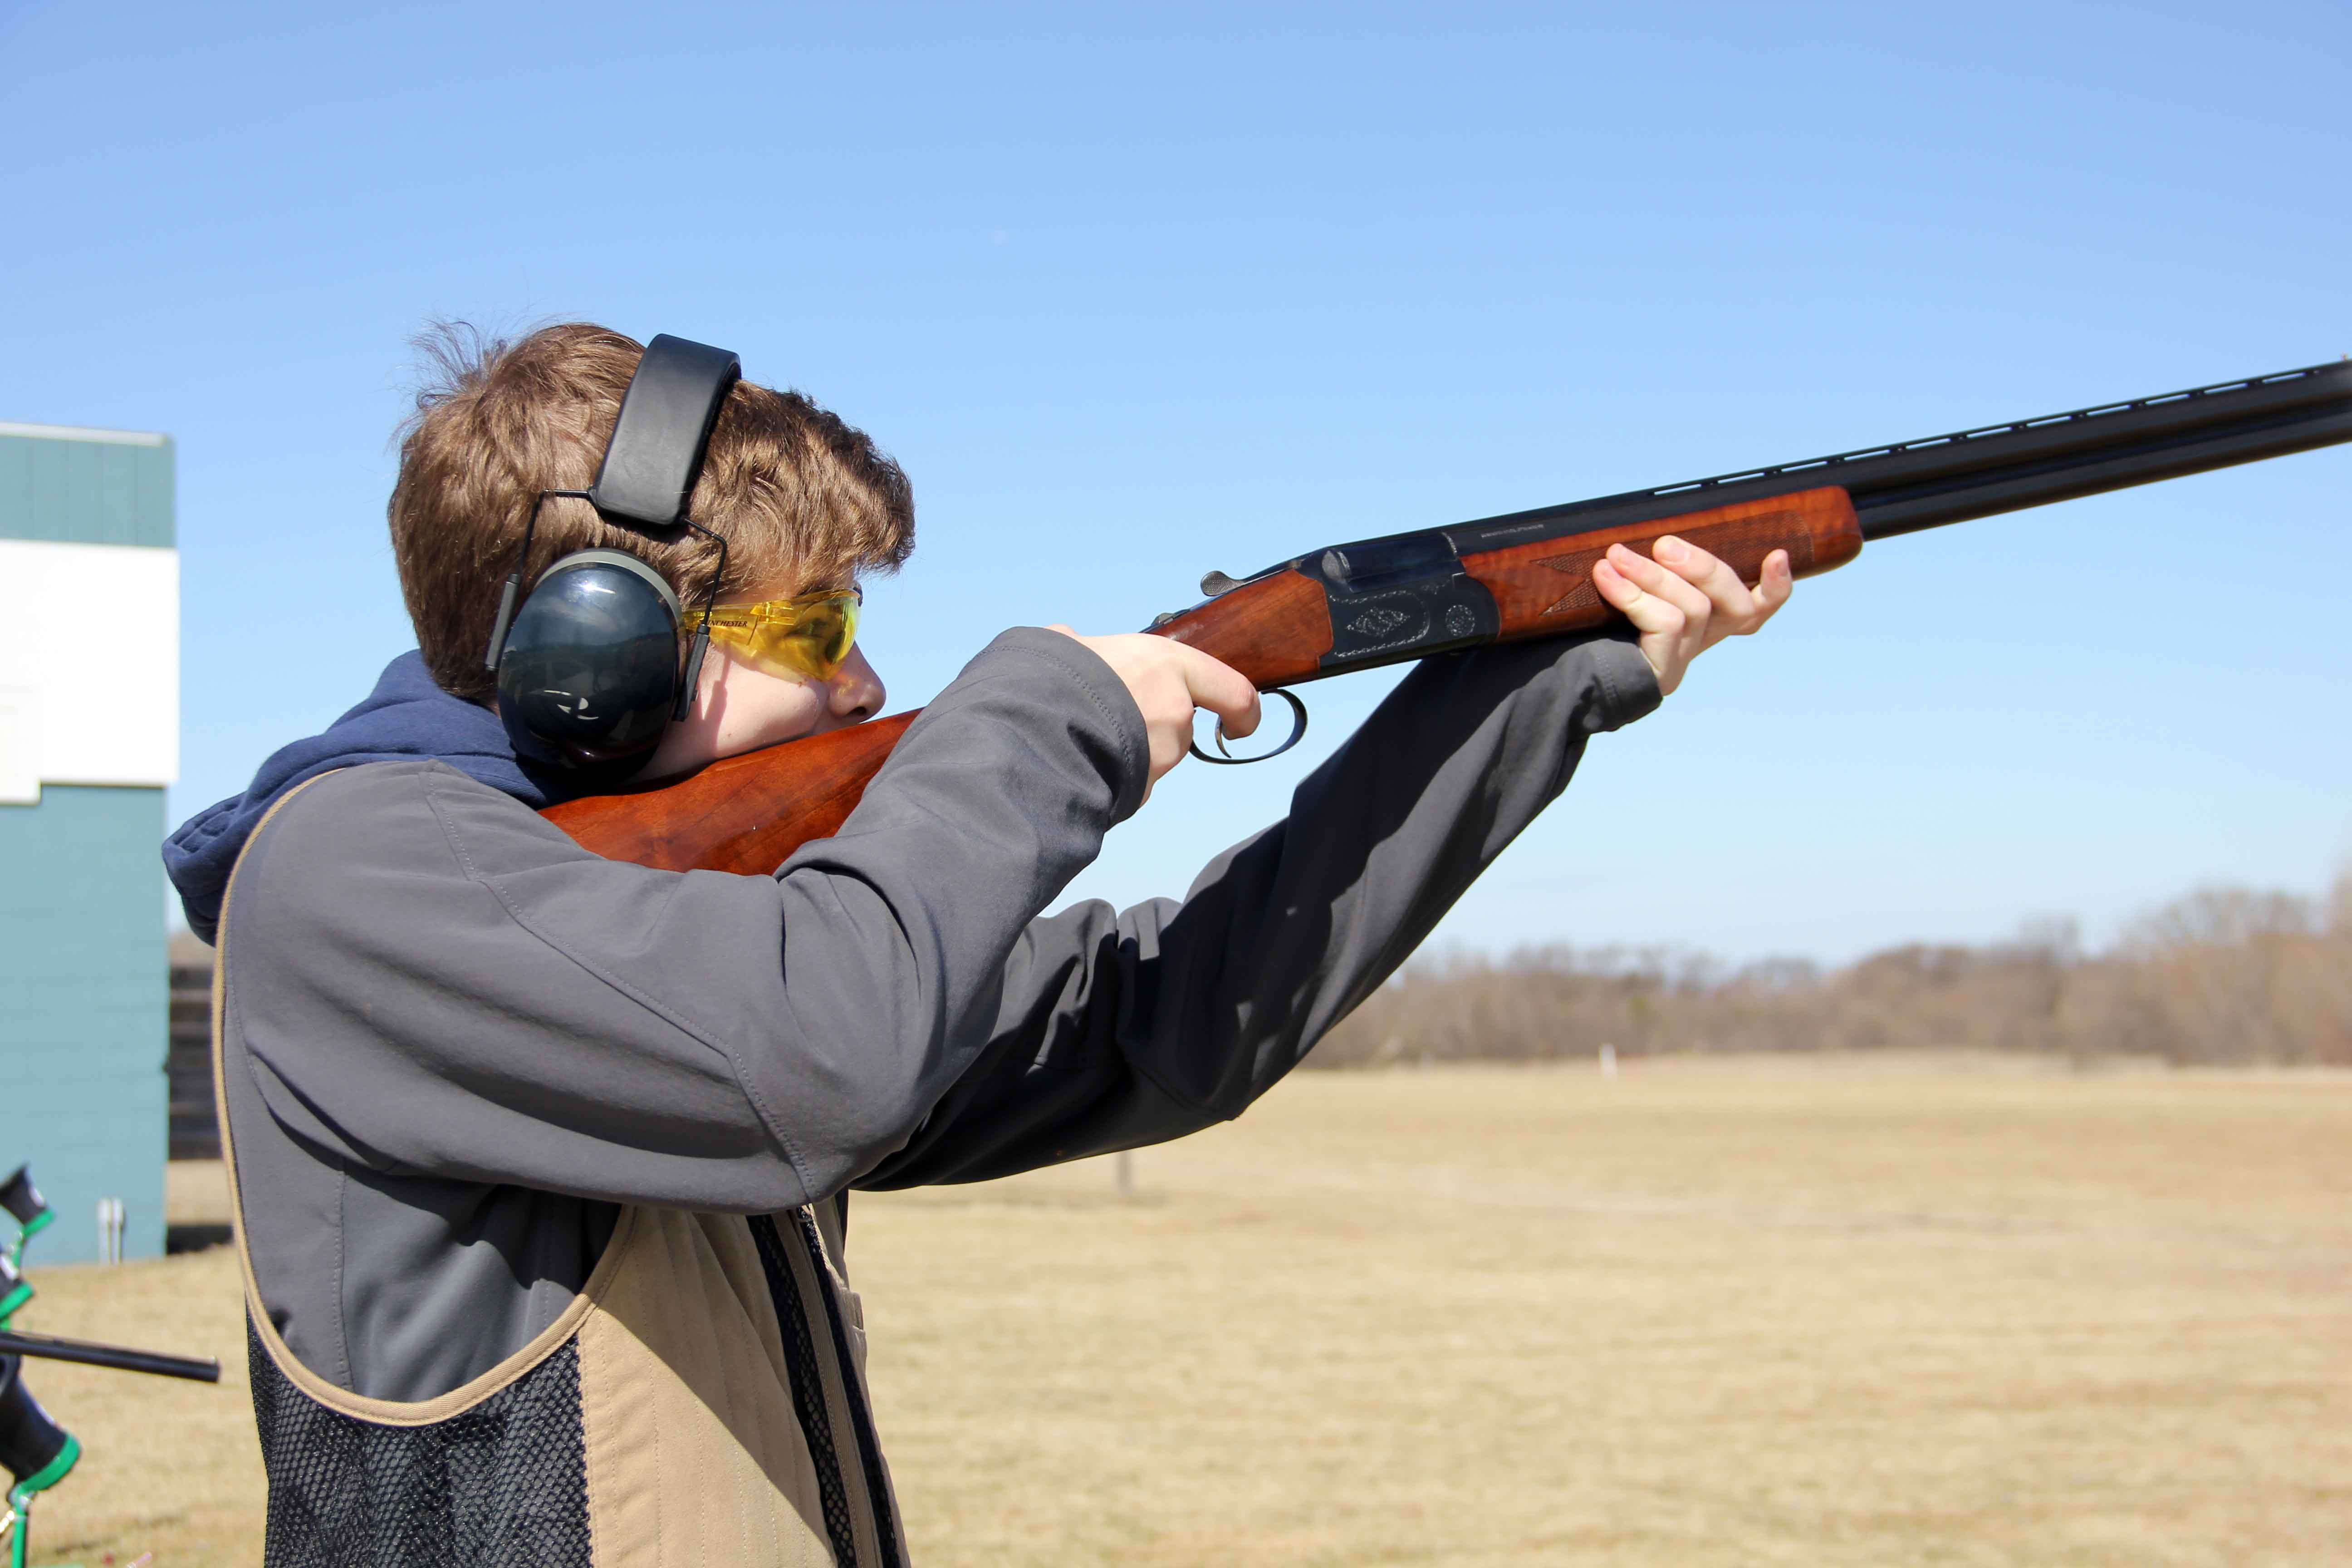 Junior Nolan Gifford shoots his gun for trap, the Remington bankruptcy filing puts the future of this sport in question.